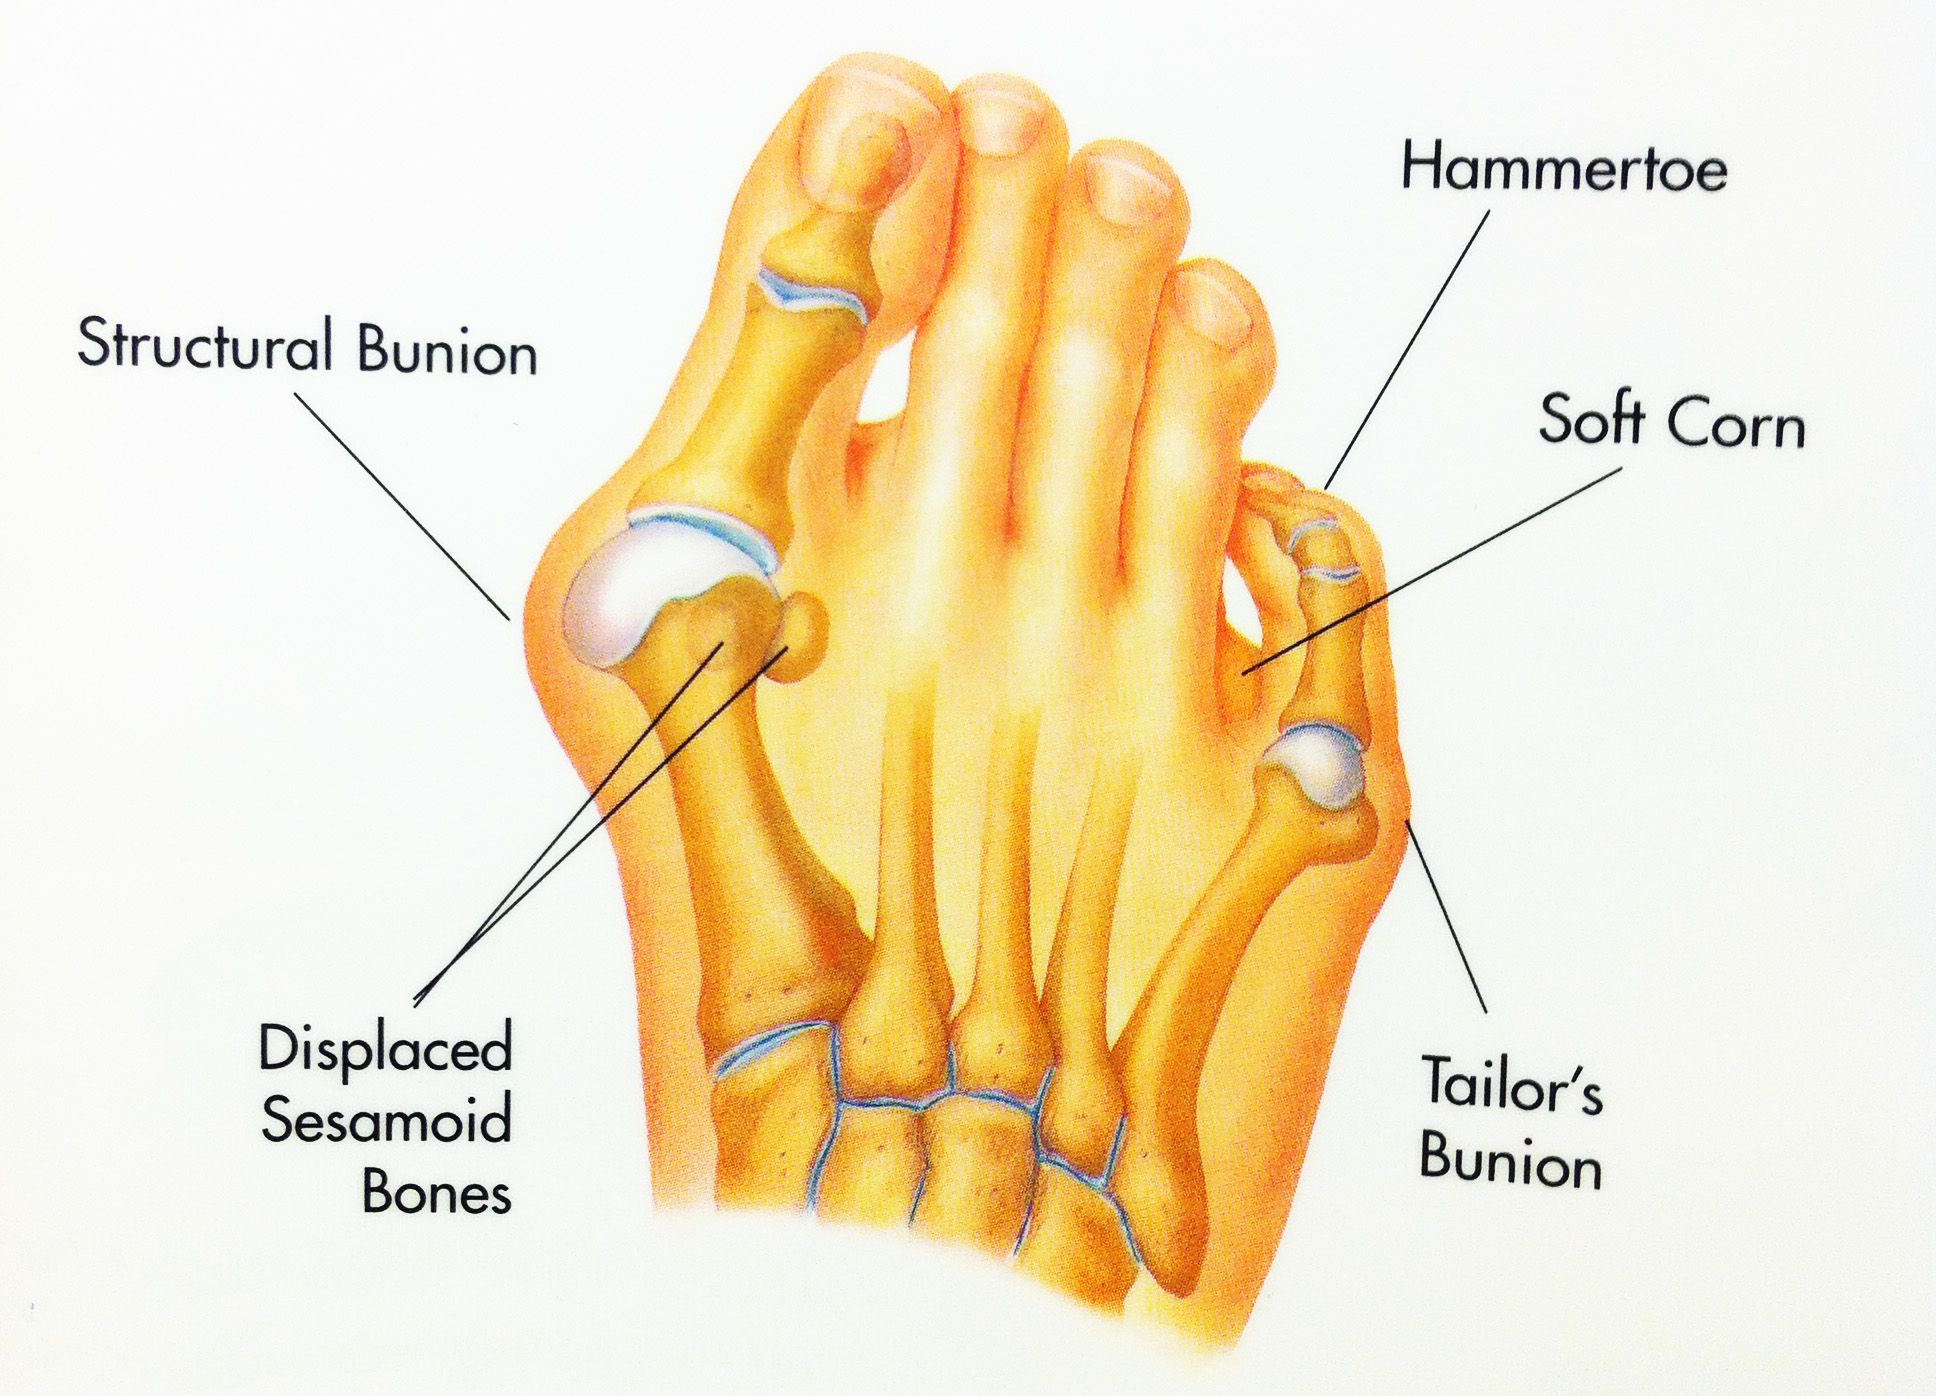 What Is A Hammertoe A Hammertoe Is An Abnormal Contracture Of A